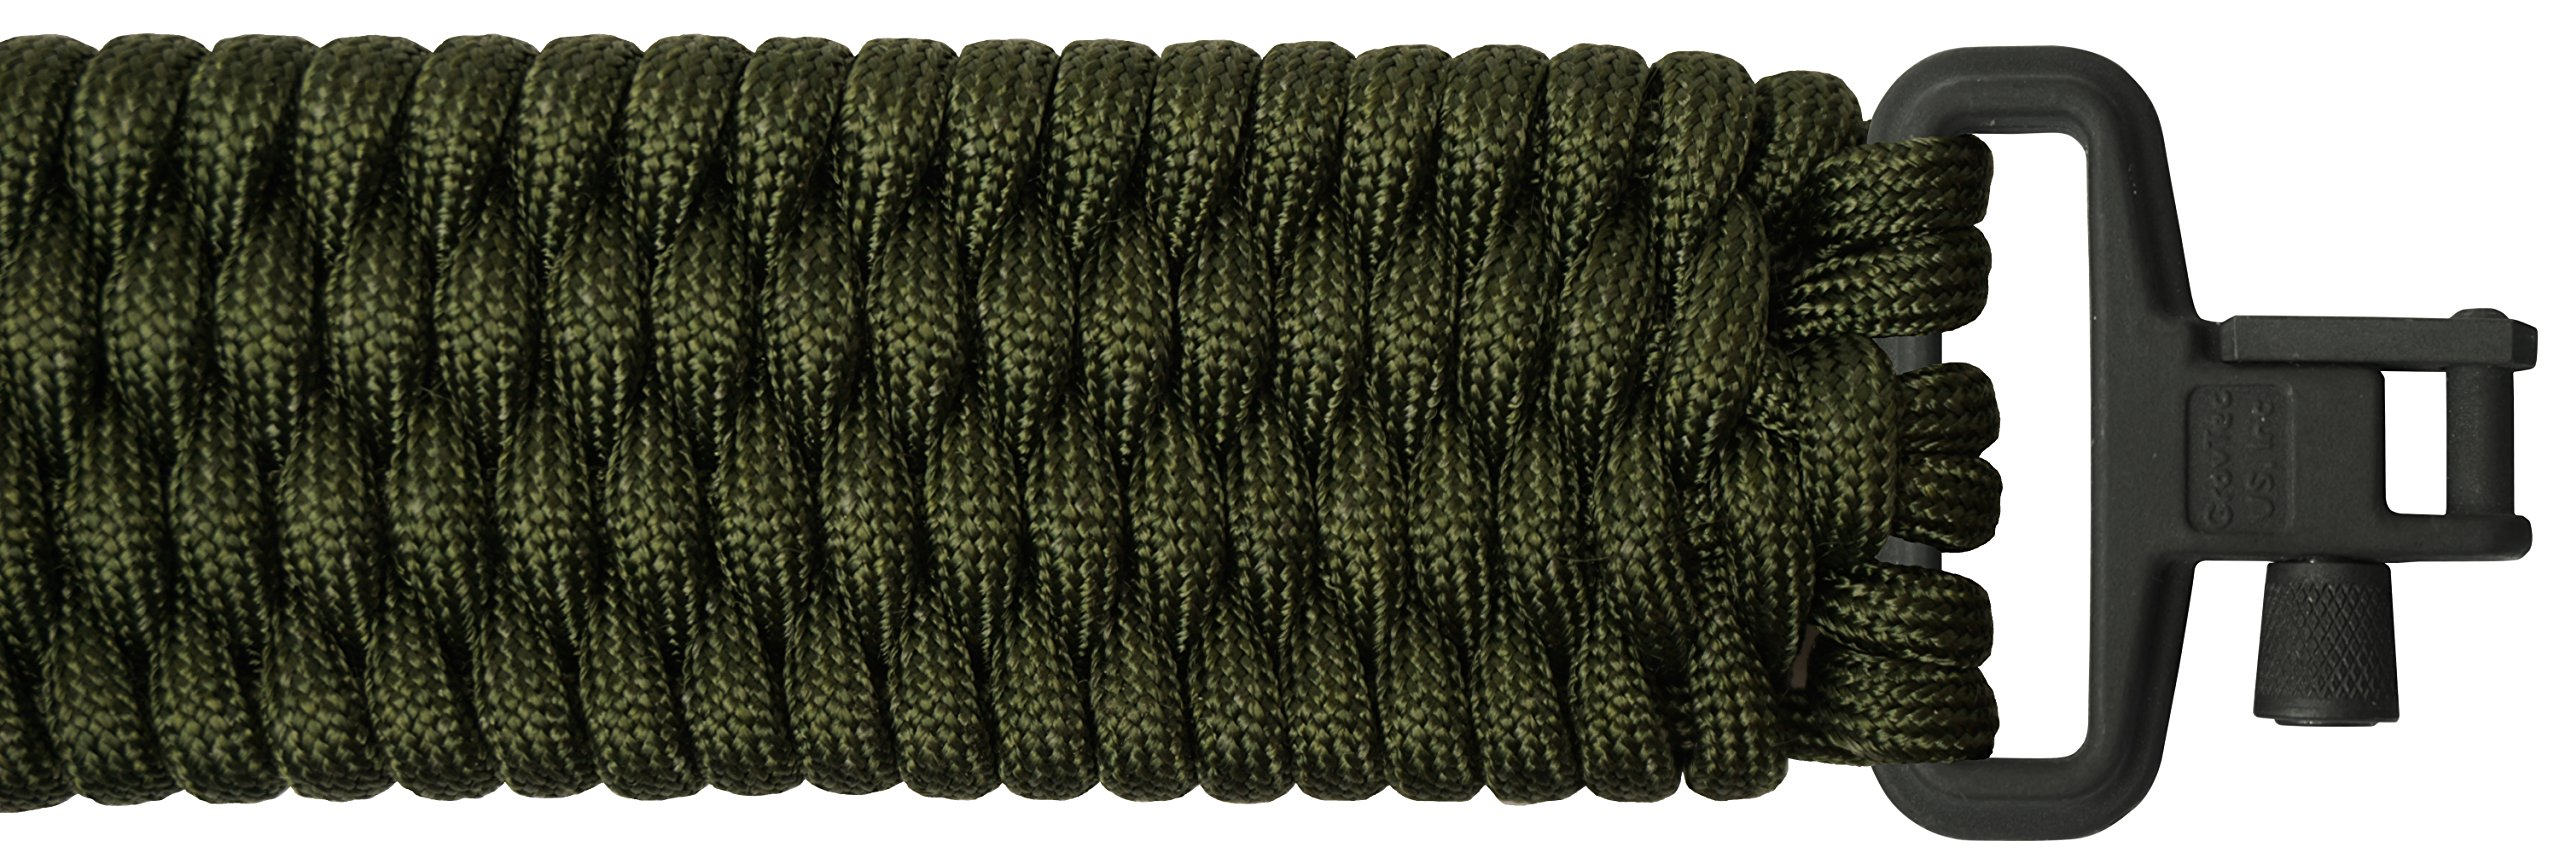 TOUGH-GRID Backbone(TM) Paracord Rifle Sling - Gun Sling/Rifle Sling - Handmade in The USA with Authentic Mil-Spec 750lb Type IV Paracord and Mil-Spec Swivels (BackBone70CGBoa) by TOUGH-GRID (Image #1)